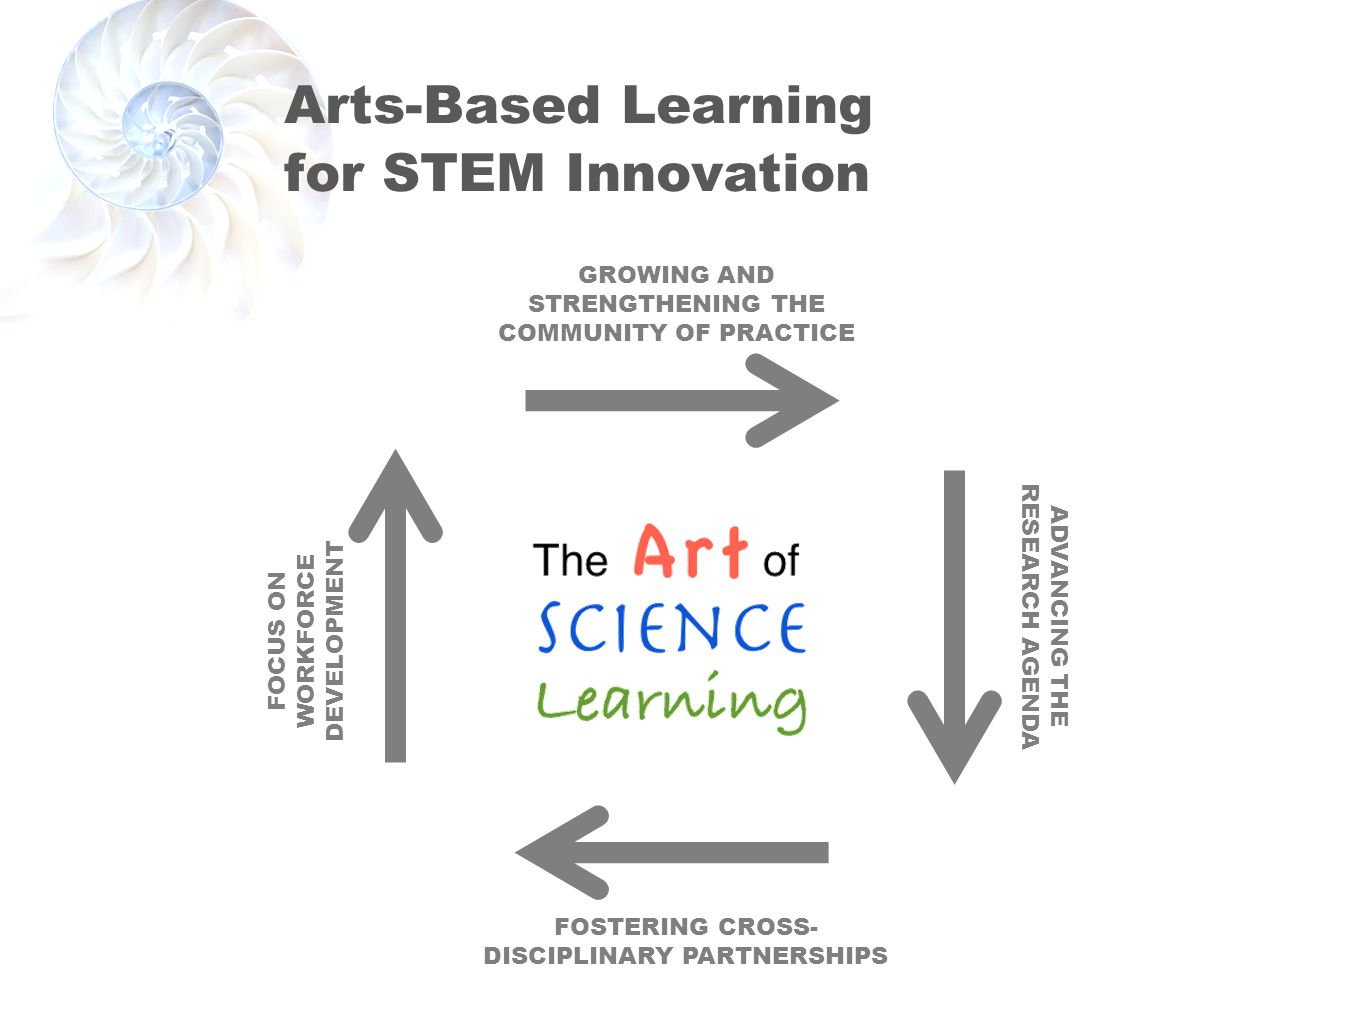 Arts-Based Learning for STEM Innovation FOSTERING CROSS- DISCIPLINARY PARTNERSHIPS FOCUS ON WORKFORCE DEVELOPMENT GROWING AND STRENGTHENING THE COMMUNITY OF PRACTICE ADVANCING THE RESEARCH AGENDA